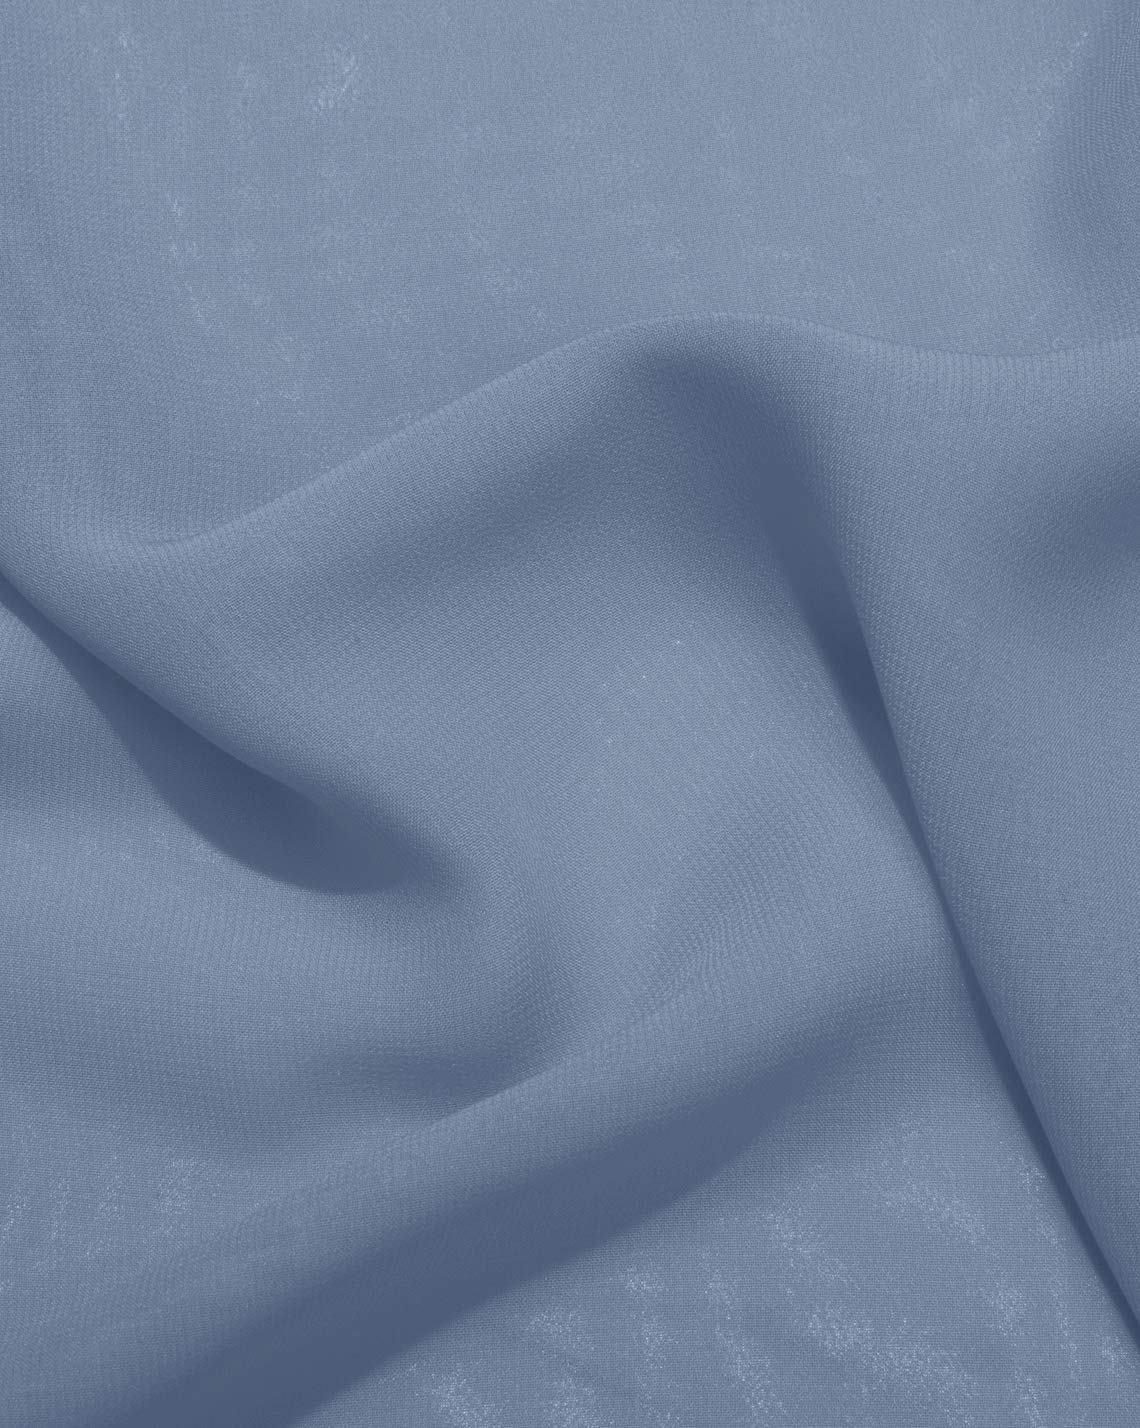 LANSITINA Solid Color Sheer Chiffon Fabric by The Yard for Draping and Dresses (5 Yards)(Dusty Blue)